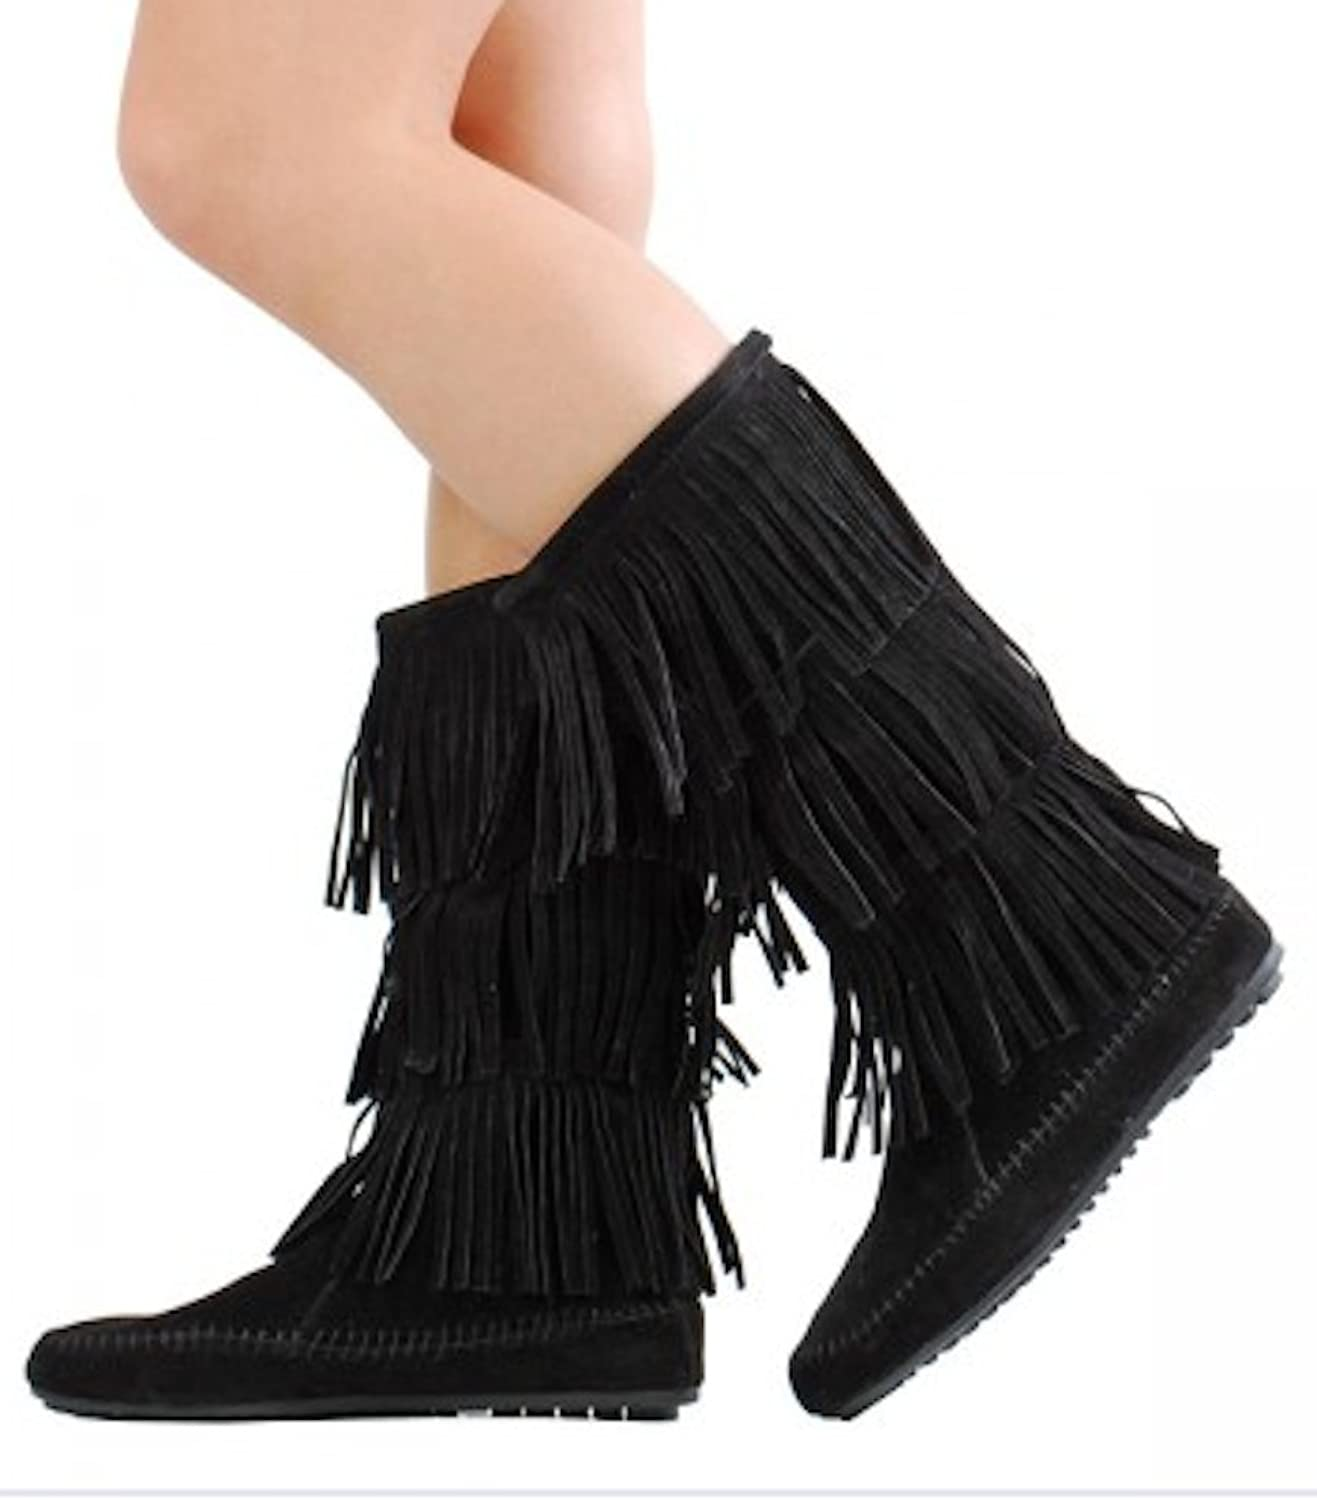 pinkgirl Women's Faux Suede Moccasin Fringe Mid Calf Boots in Black, Camel, Grey, Beige (6, Black)